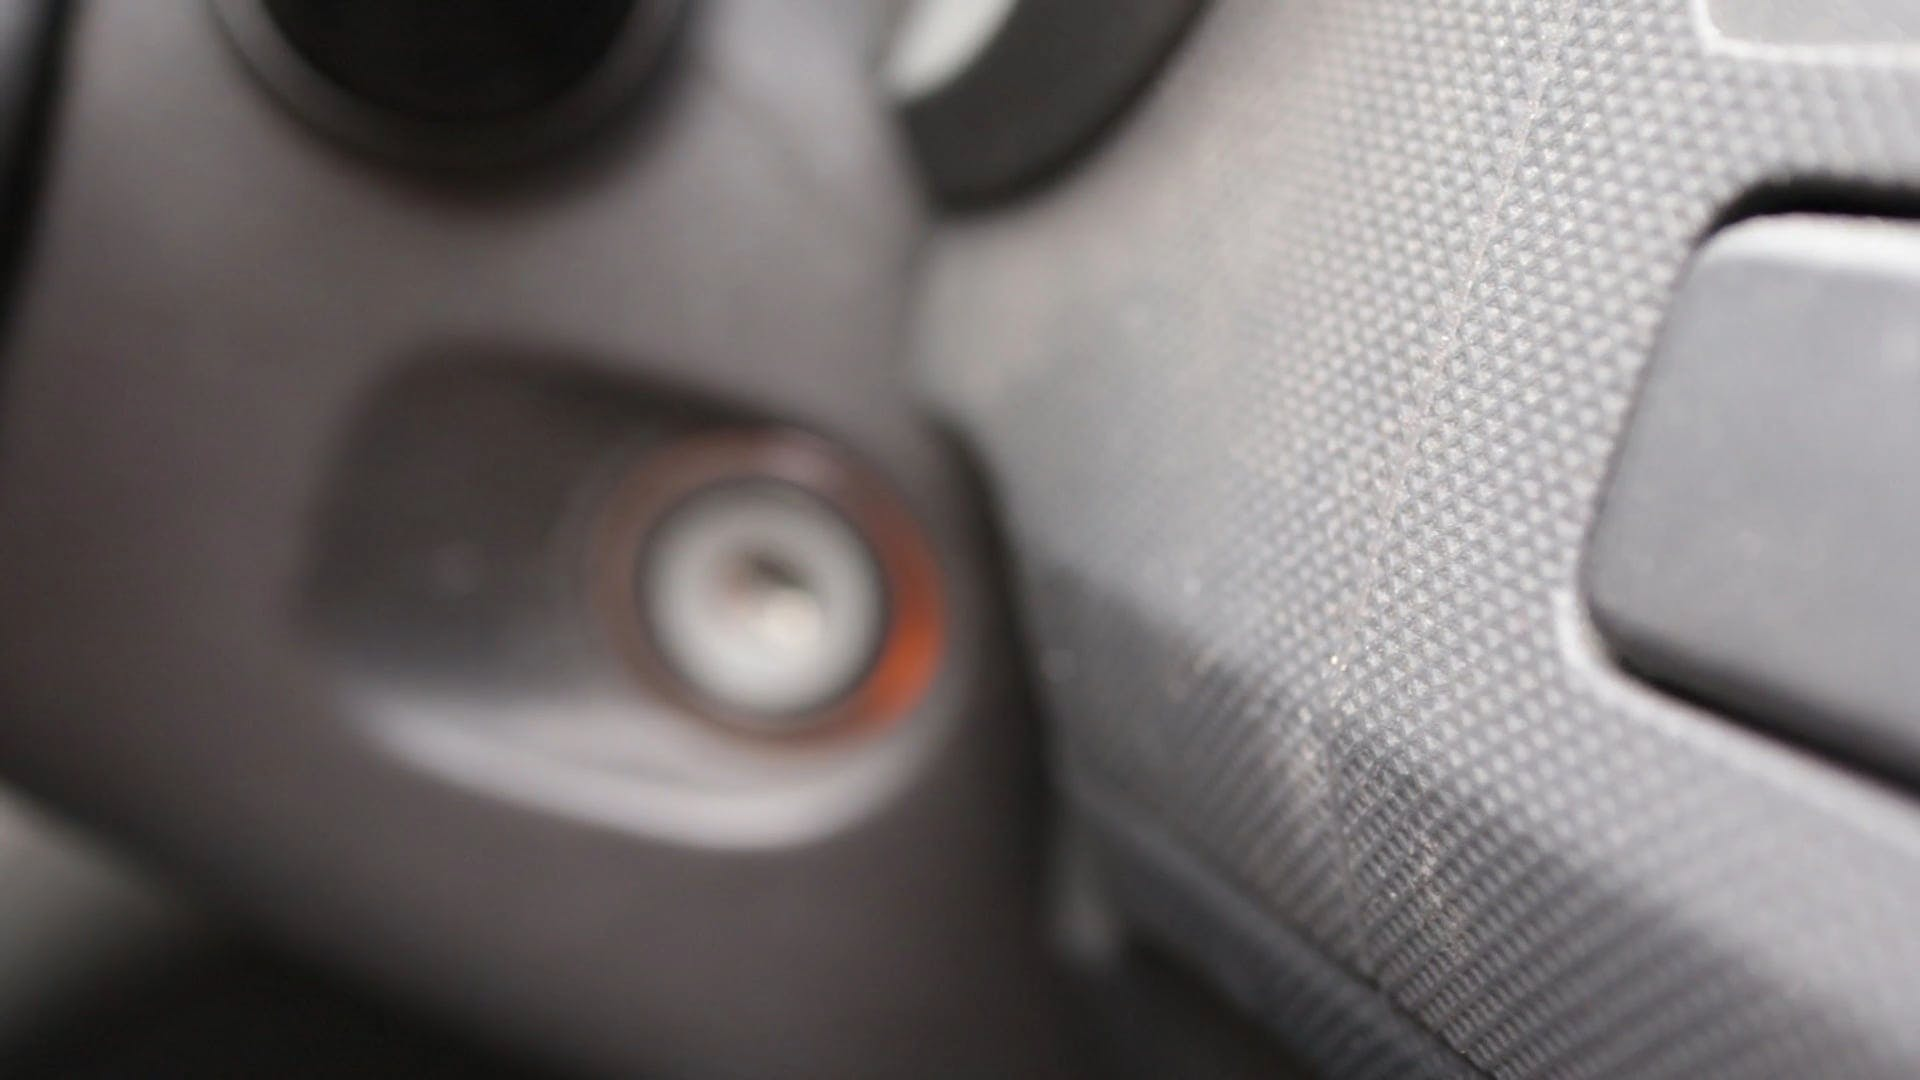 Close-Up View Of A Car Ignition